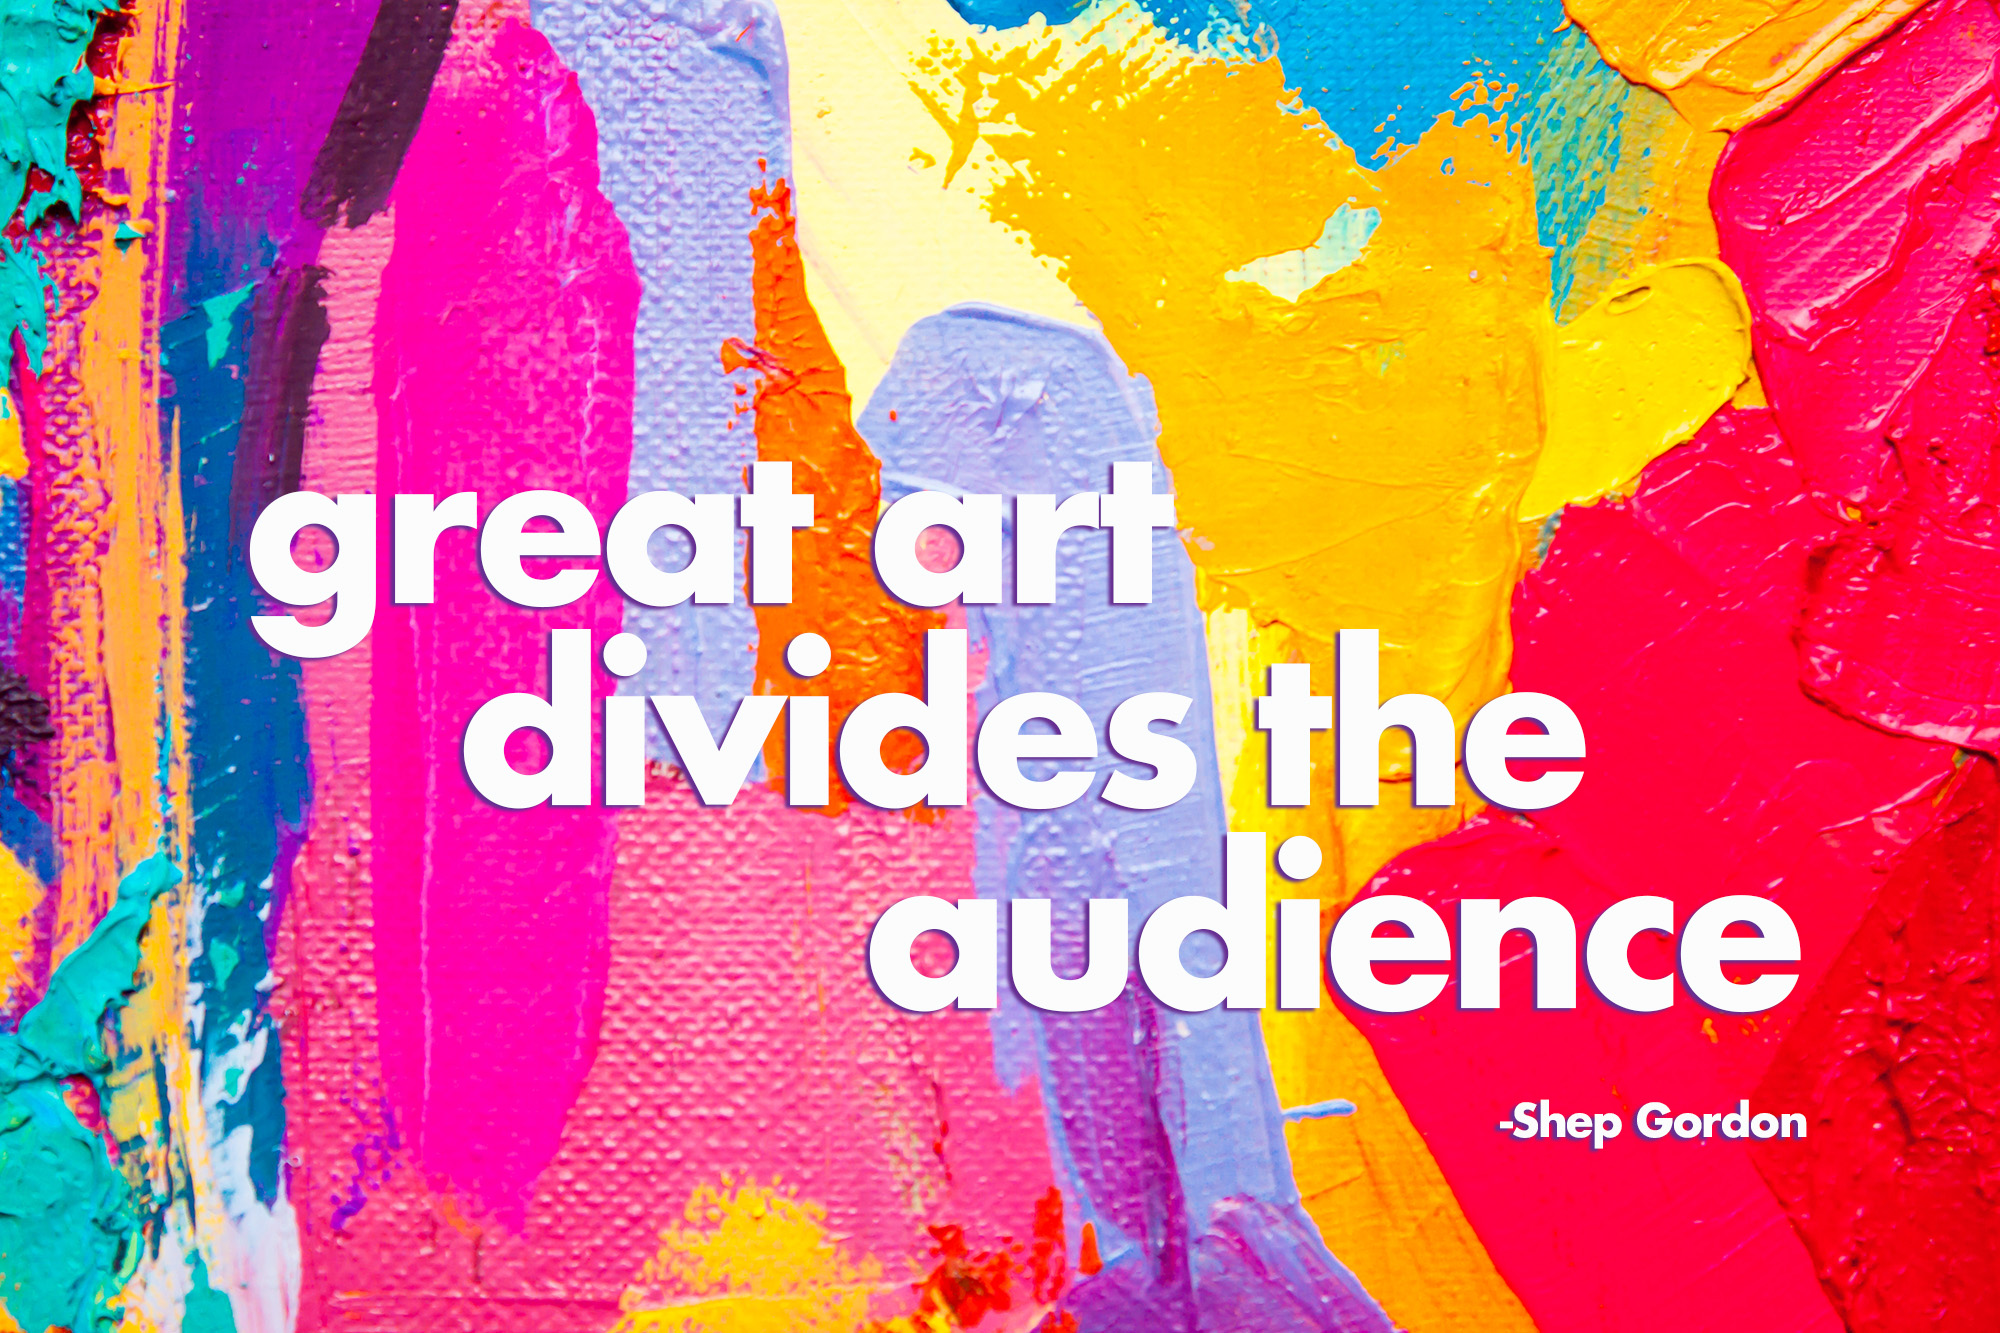 Great art divides the audience